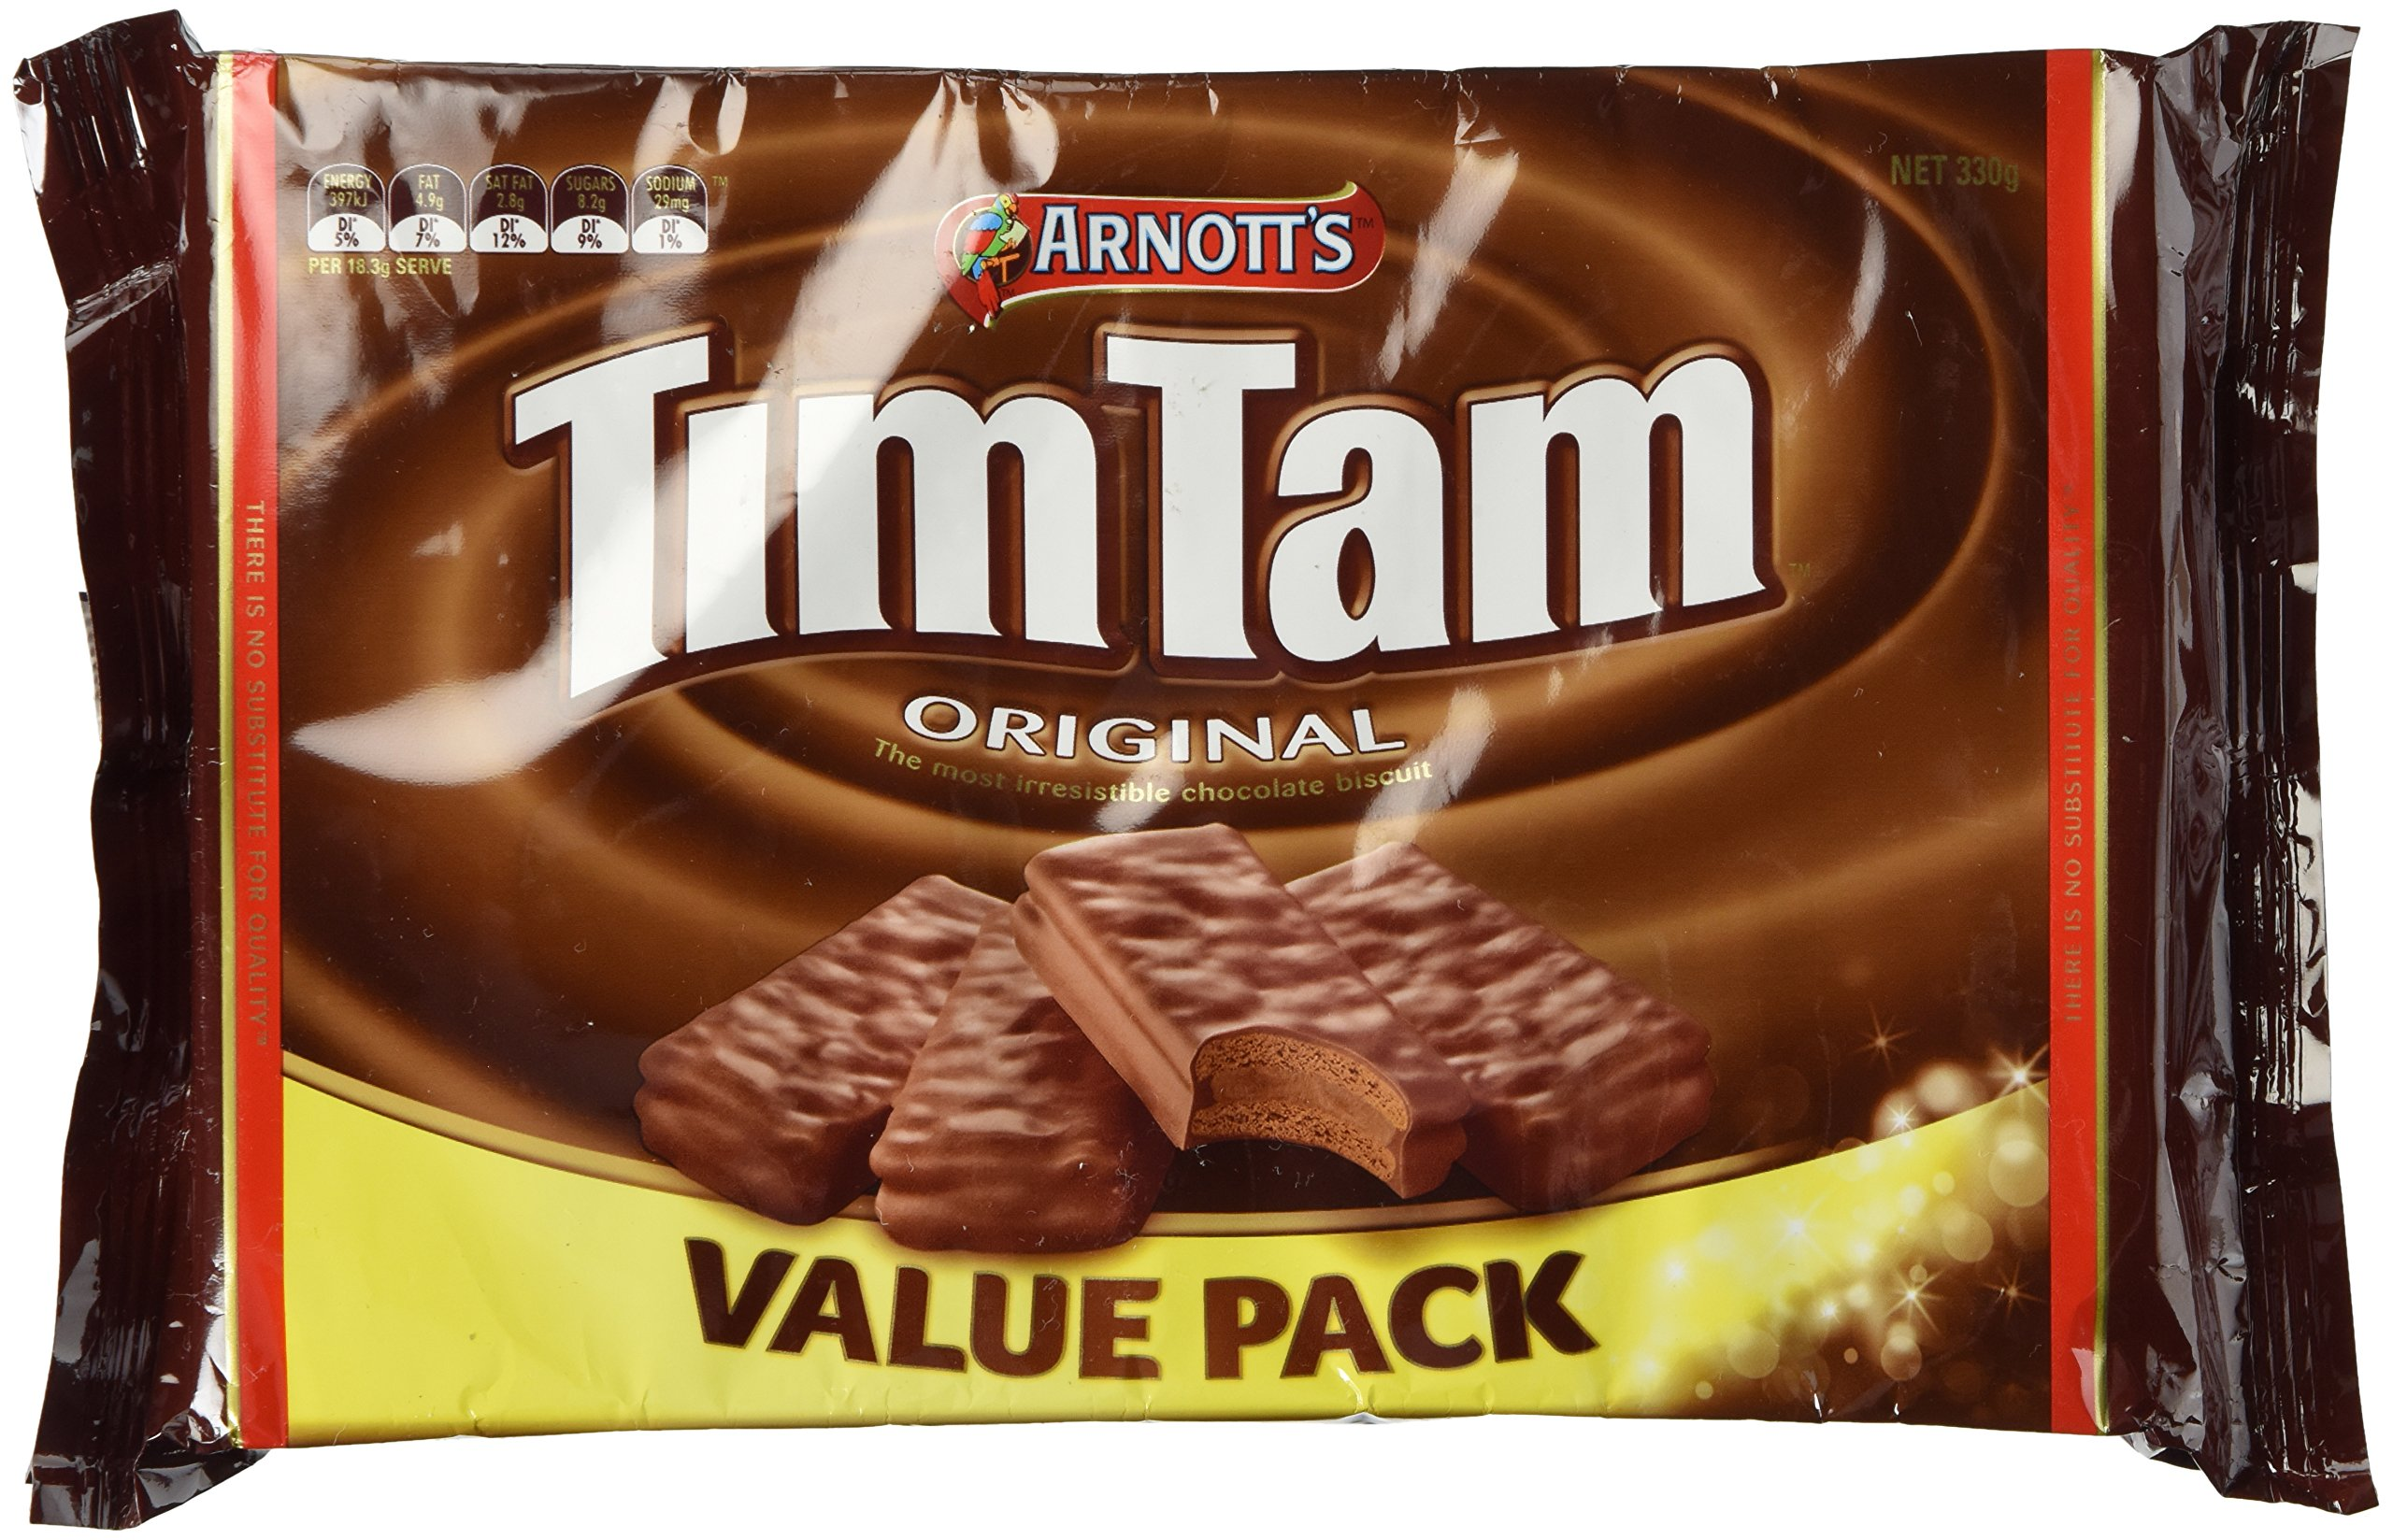 Arnott's Tim Tam Original Value Pack 330g